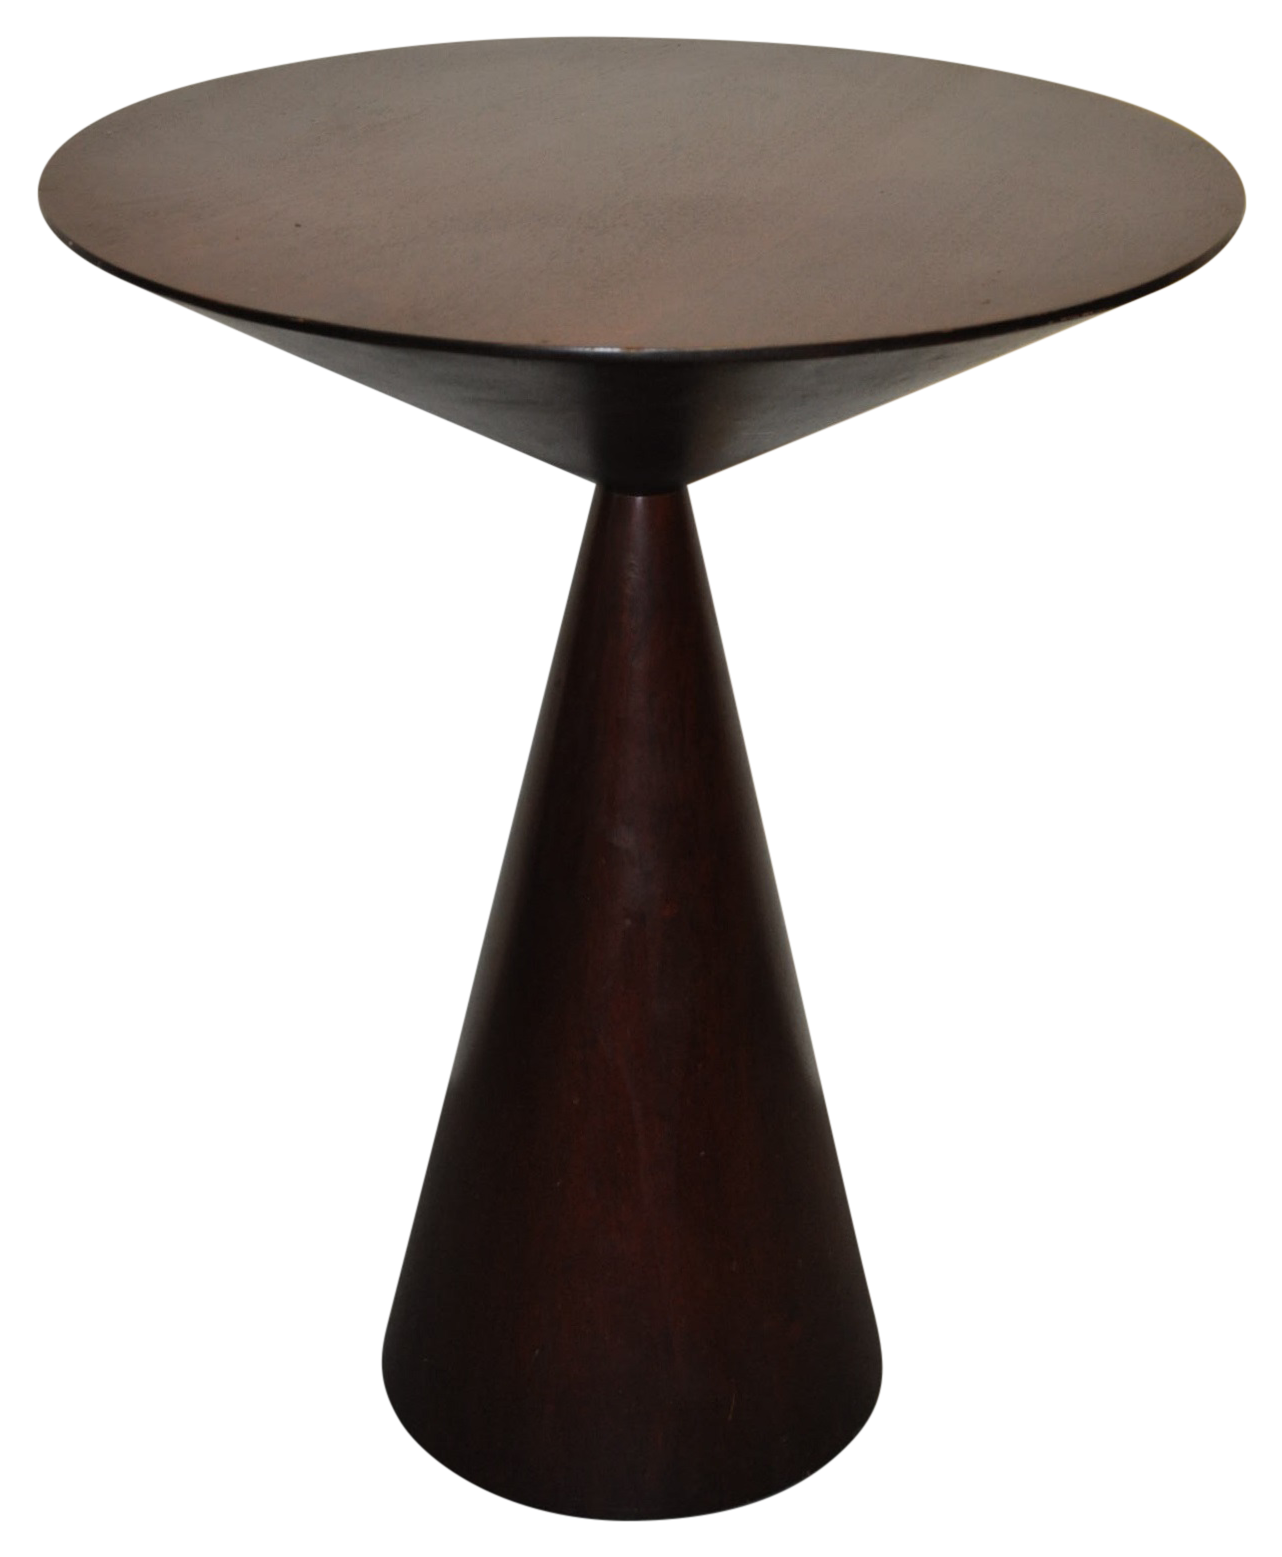 office side tables. Contemporary Cone Shaped Side Table On Chairish.com Office Tables I